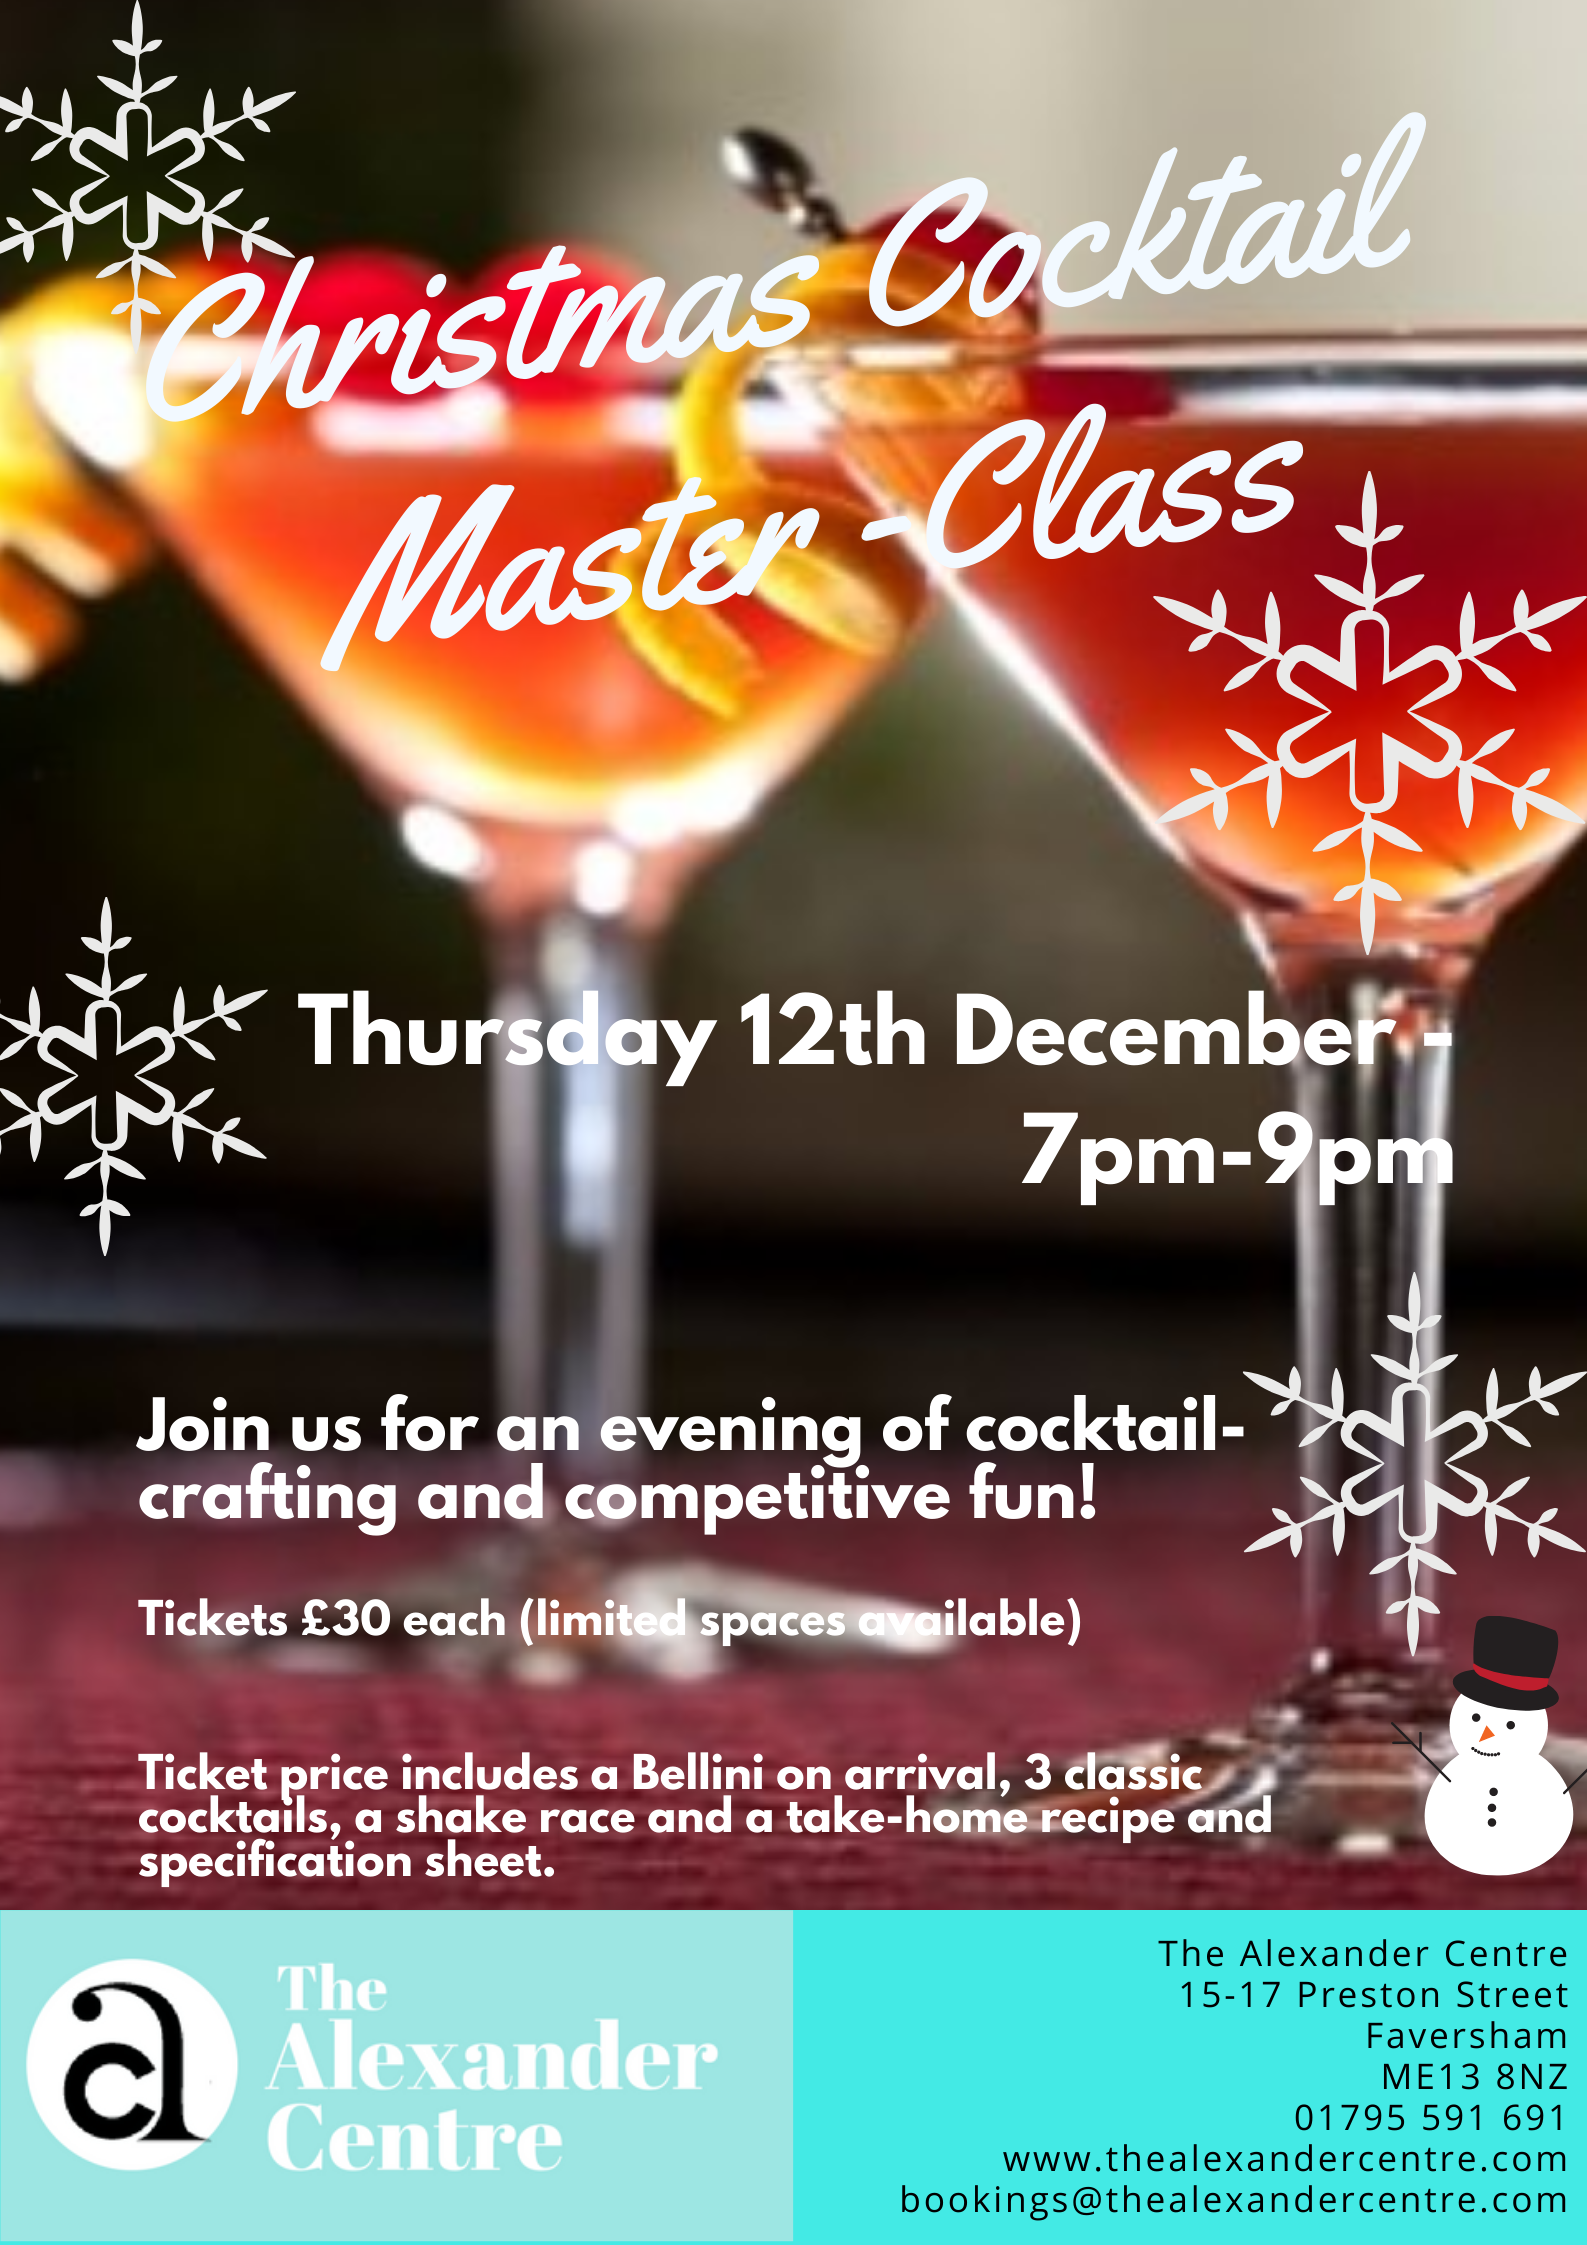 Christmas Cocktail Master-Class